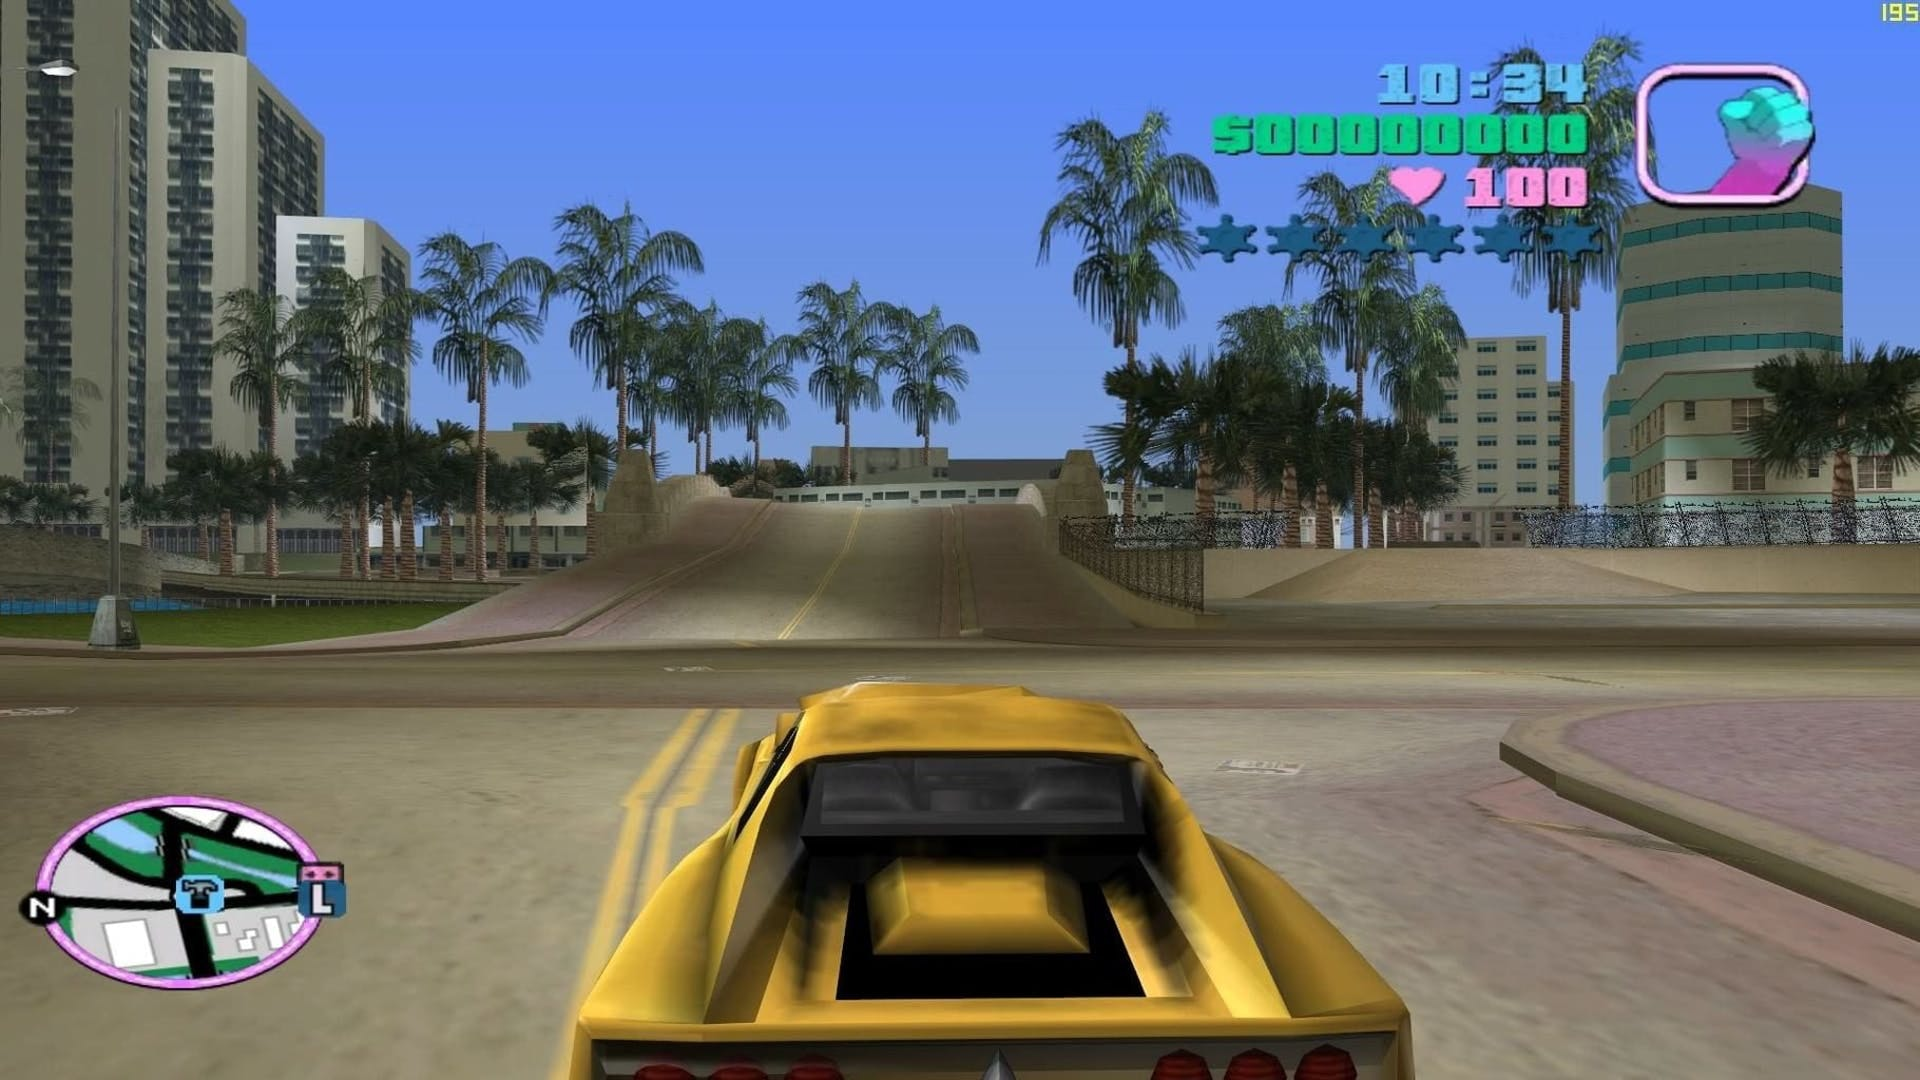 Grand Theft Auto: Vice City Soundtrack